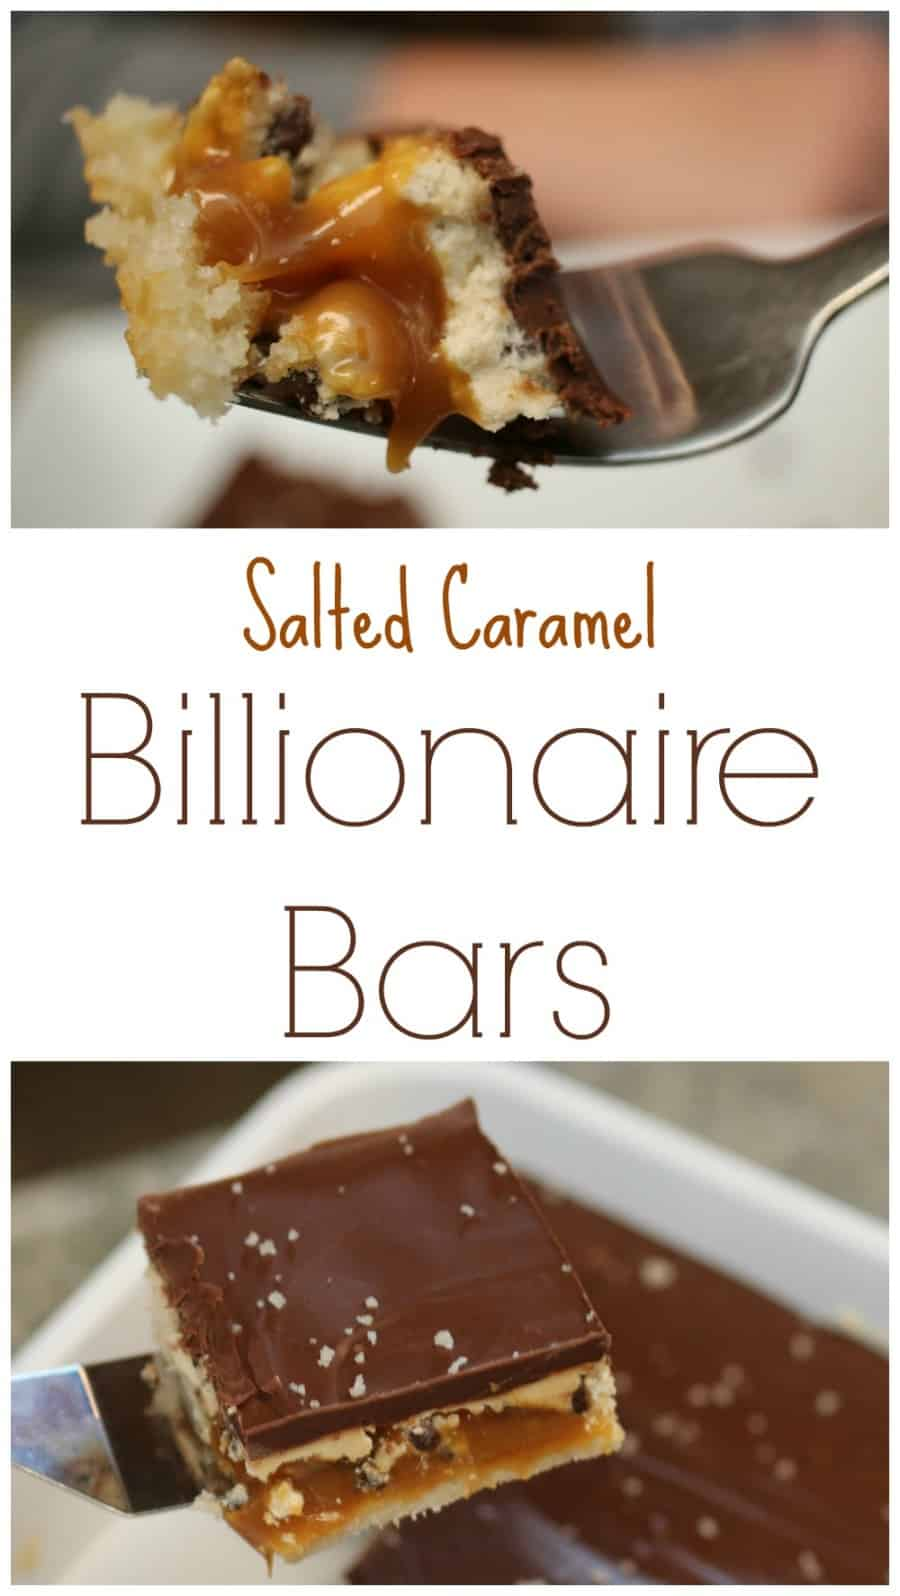 Salted Caramel Billionaire Bars Recipe